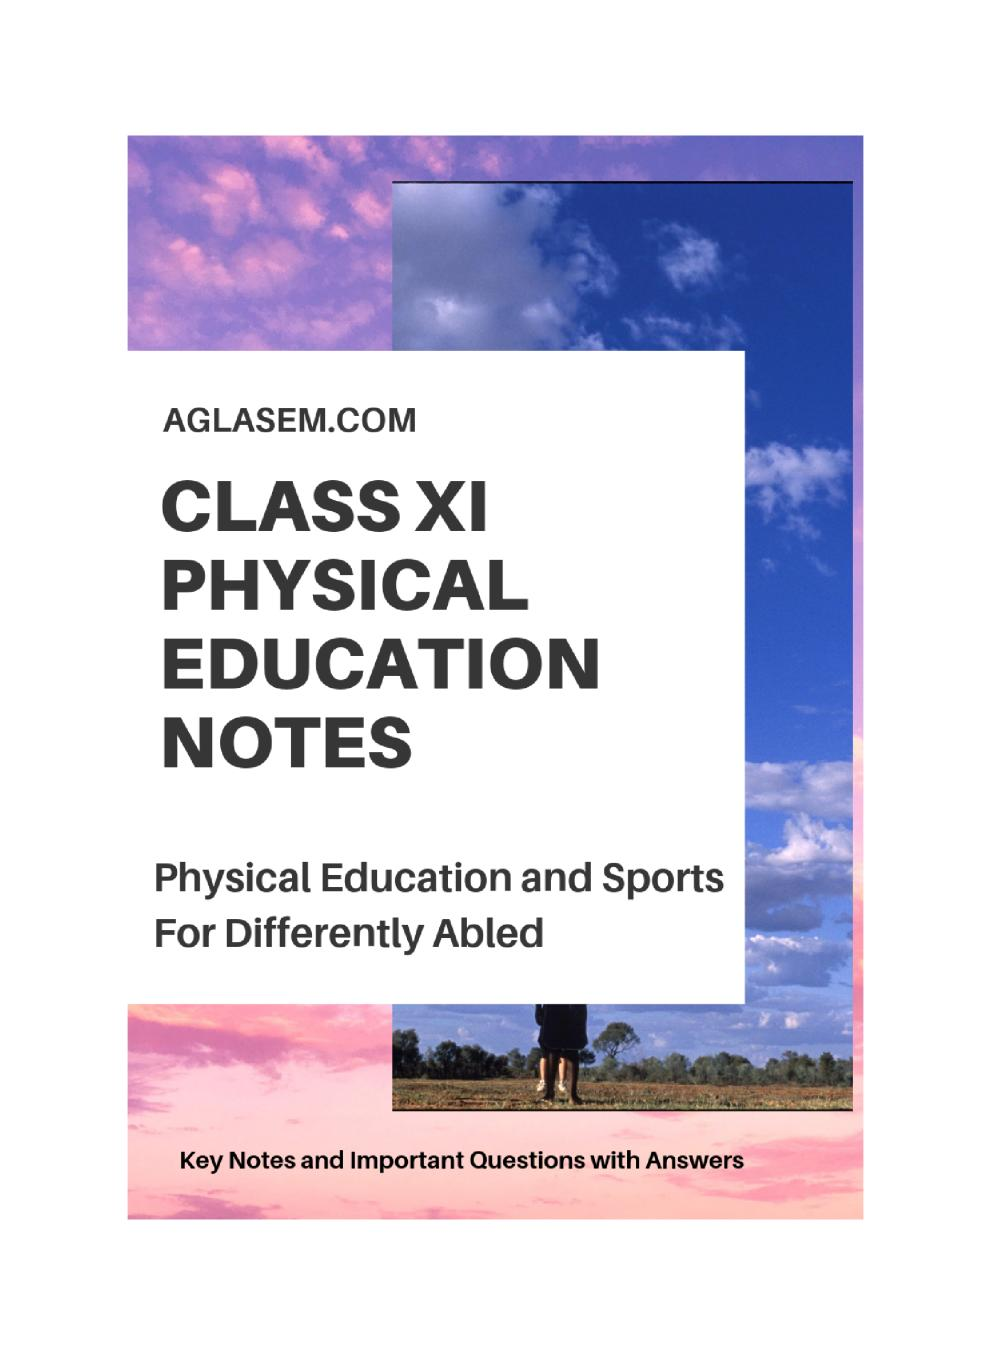 Class 11 Physical Education Notes For Physical Education and Sports for Differently Abled